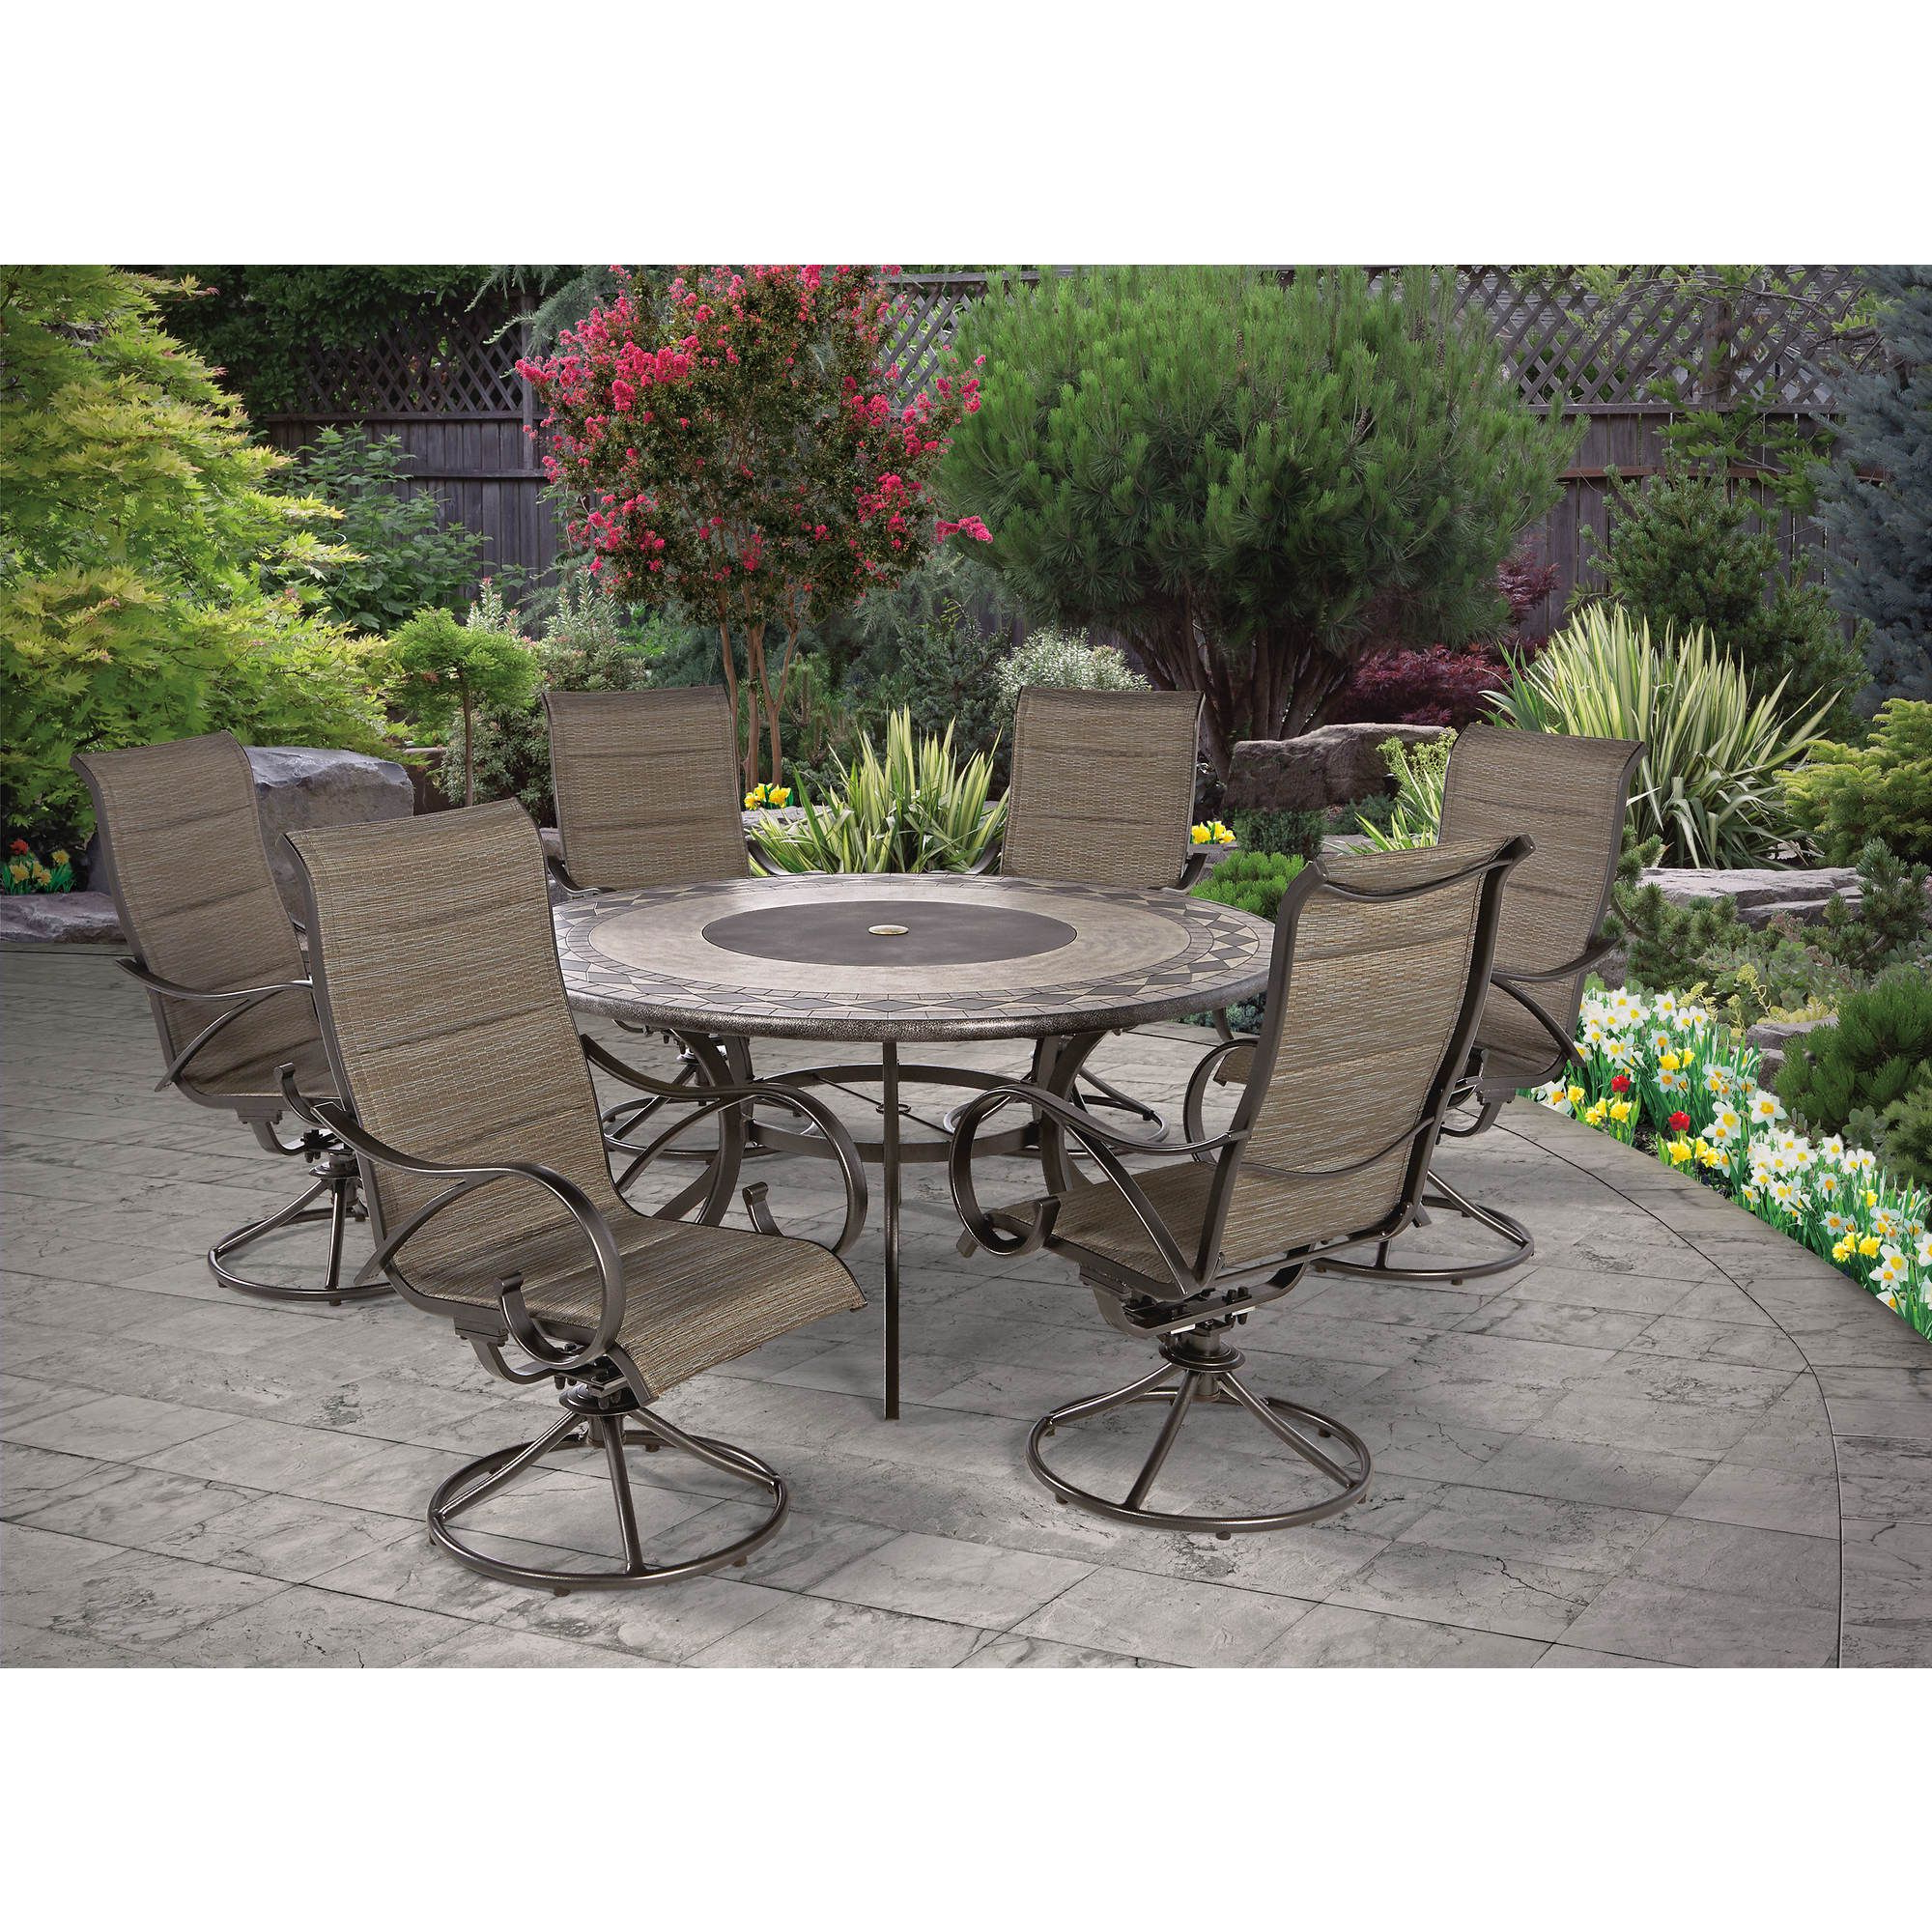 Berkley Jensen Seaport 7 Pc. Padded Sling Dining Set – Bjs Wholesale Intended For Most Current Rossi 5 Piece Dining Sets (Gallery 13 of 20)